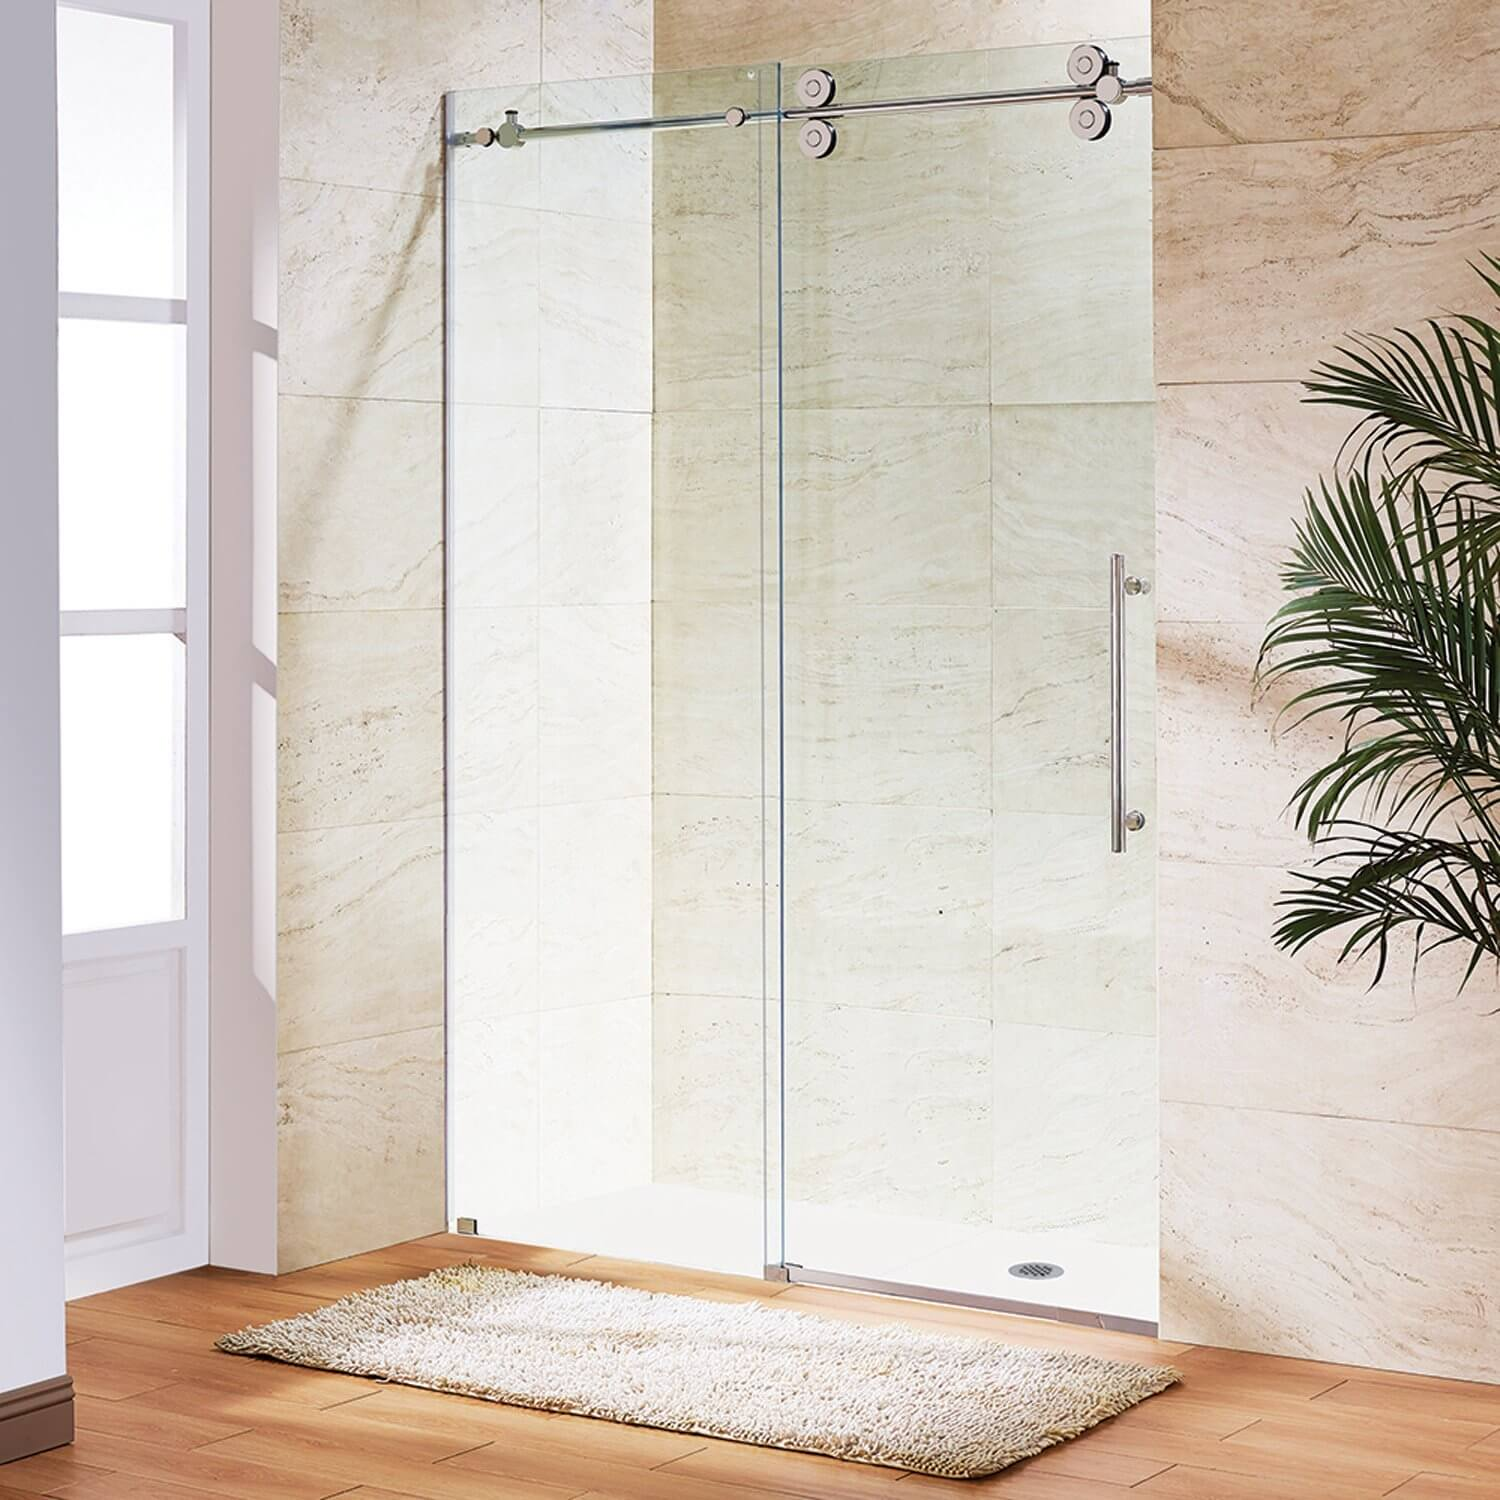 cleaning bathroom glass shower doors